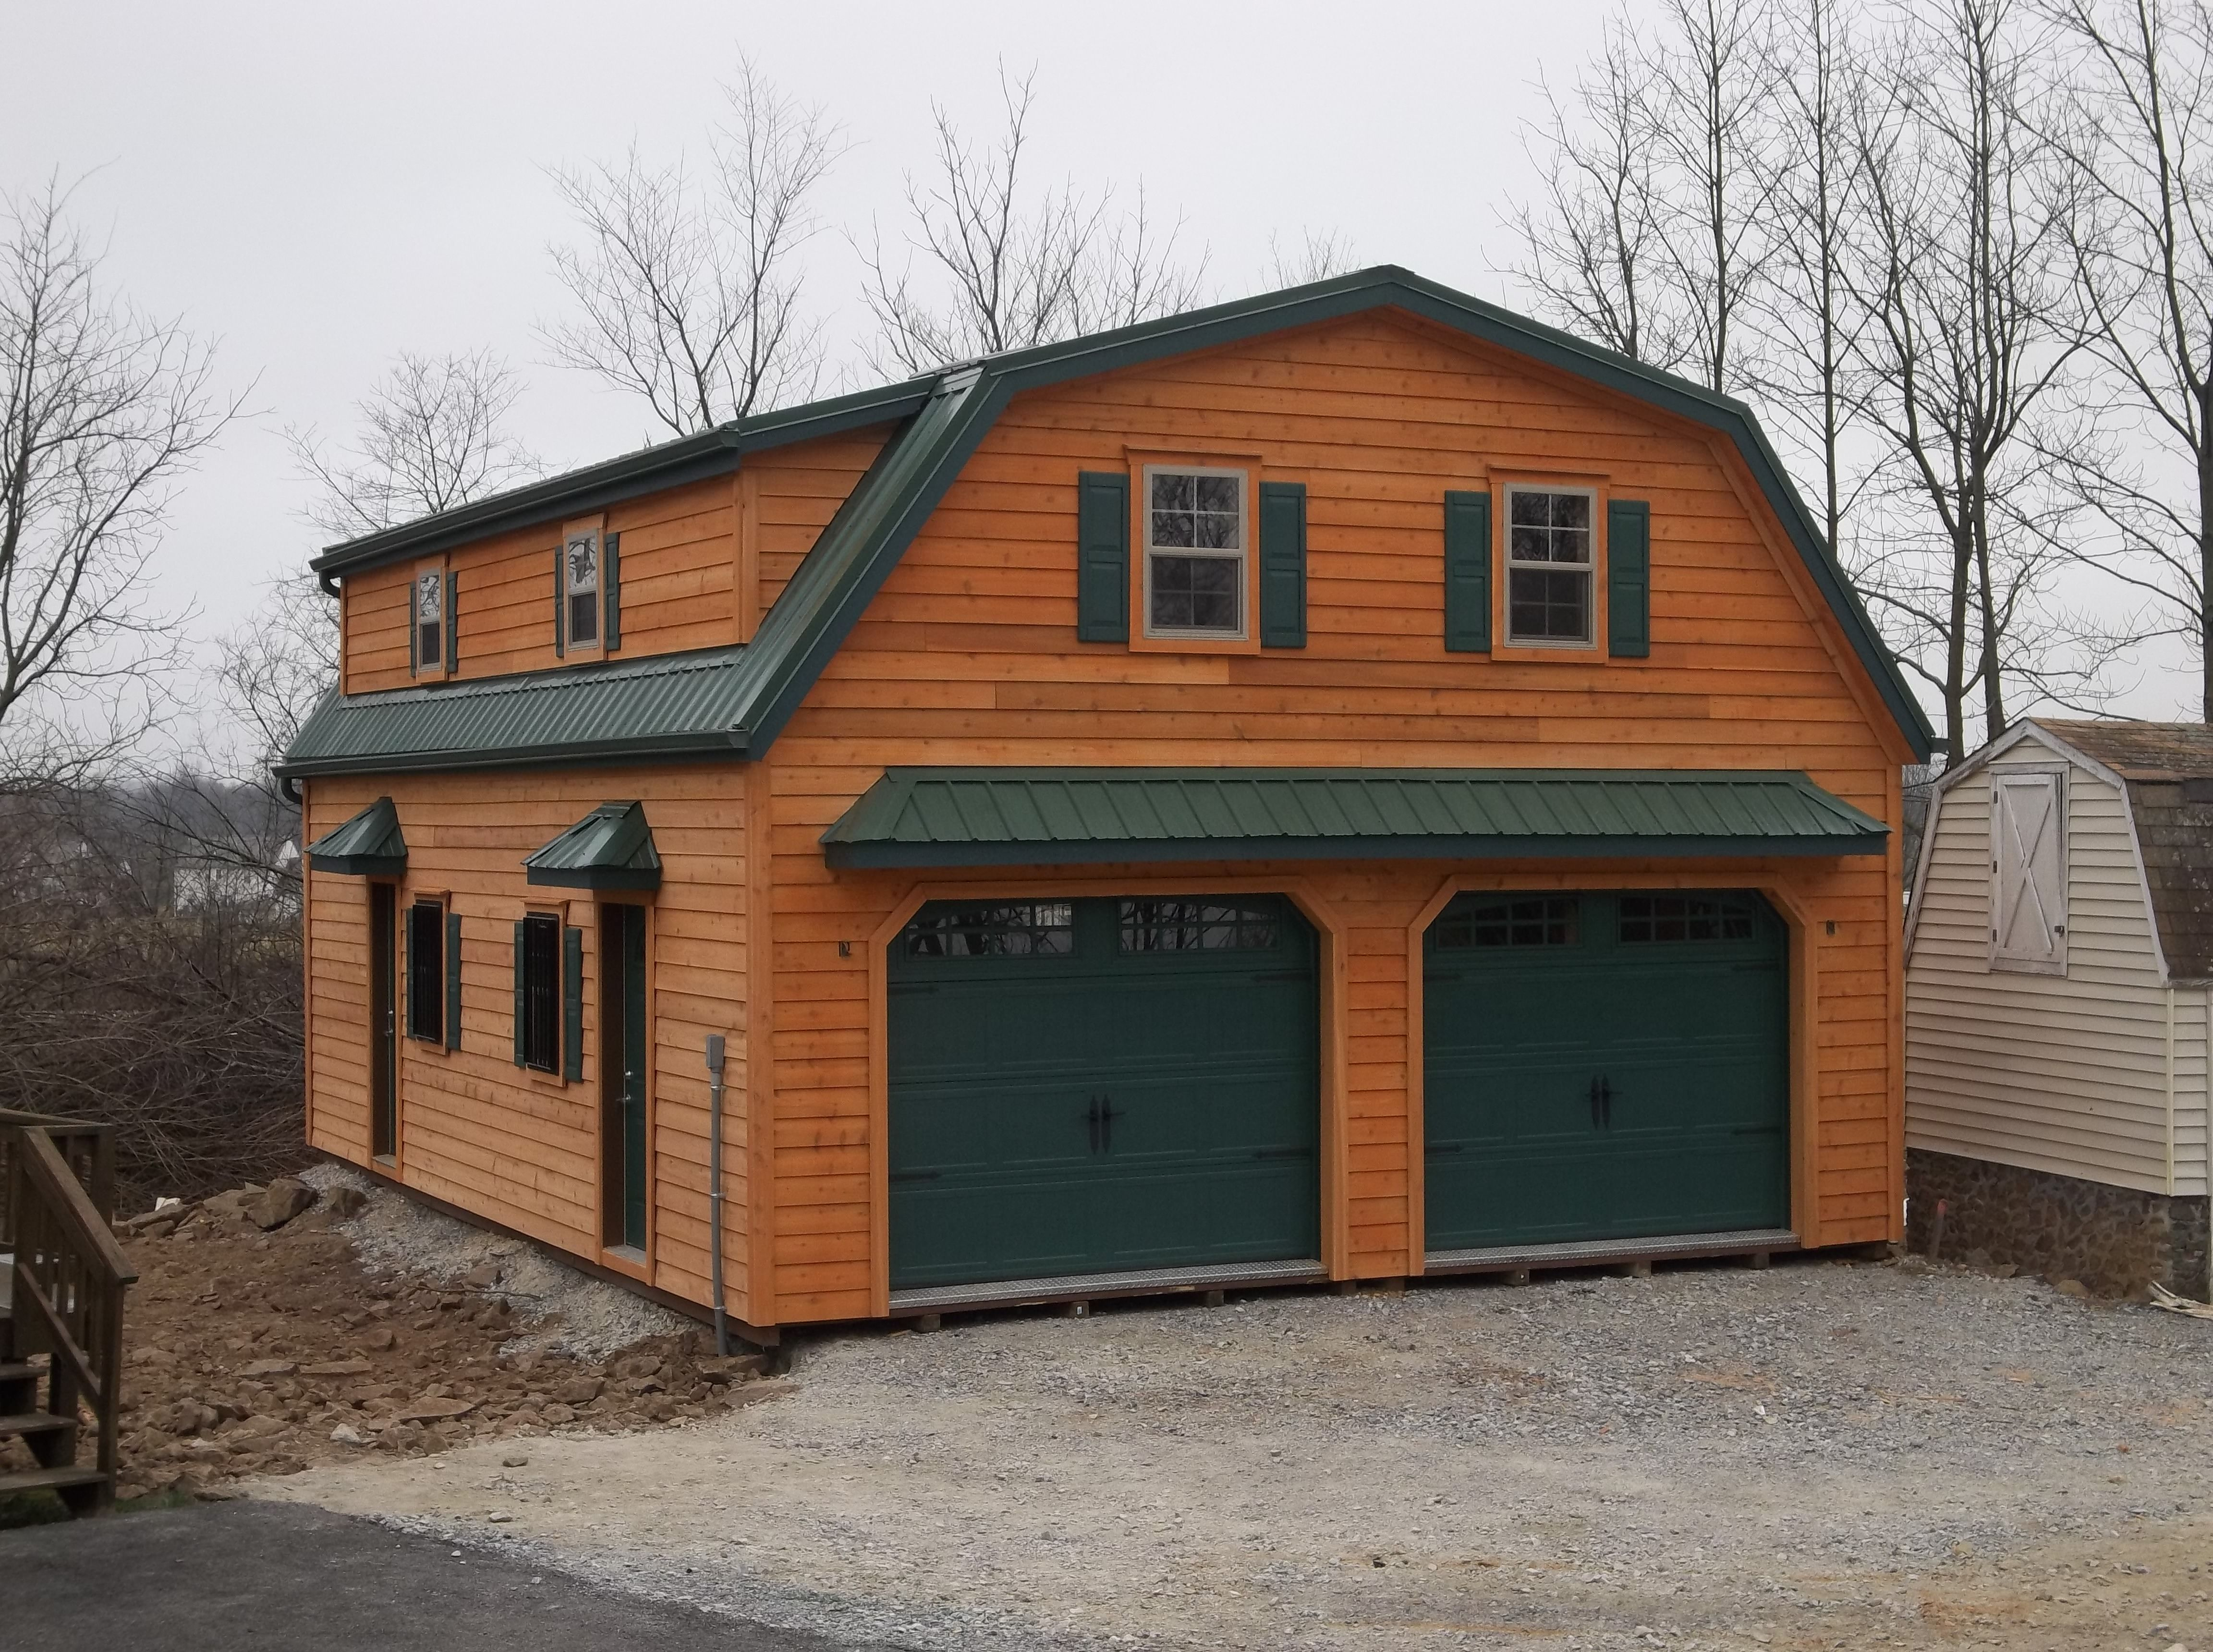 custom 2 story garage with gambrel roof aframe cabins order two story garages from stoltzfus structures our a frame gambrel roof plans are high quality affordable perfect for vehicles storage more